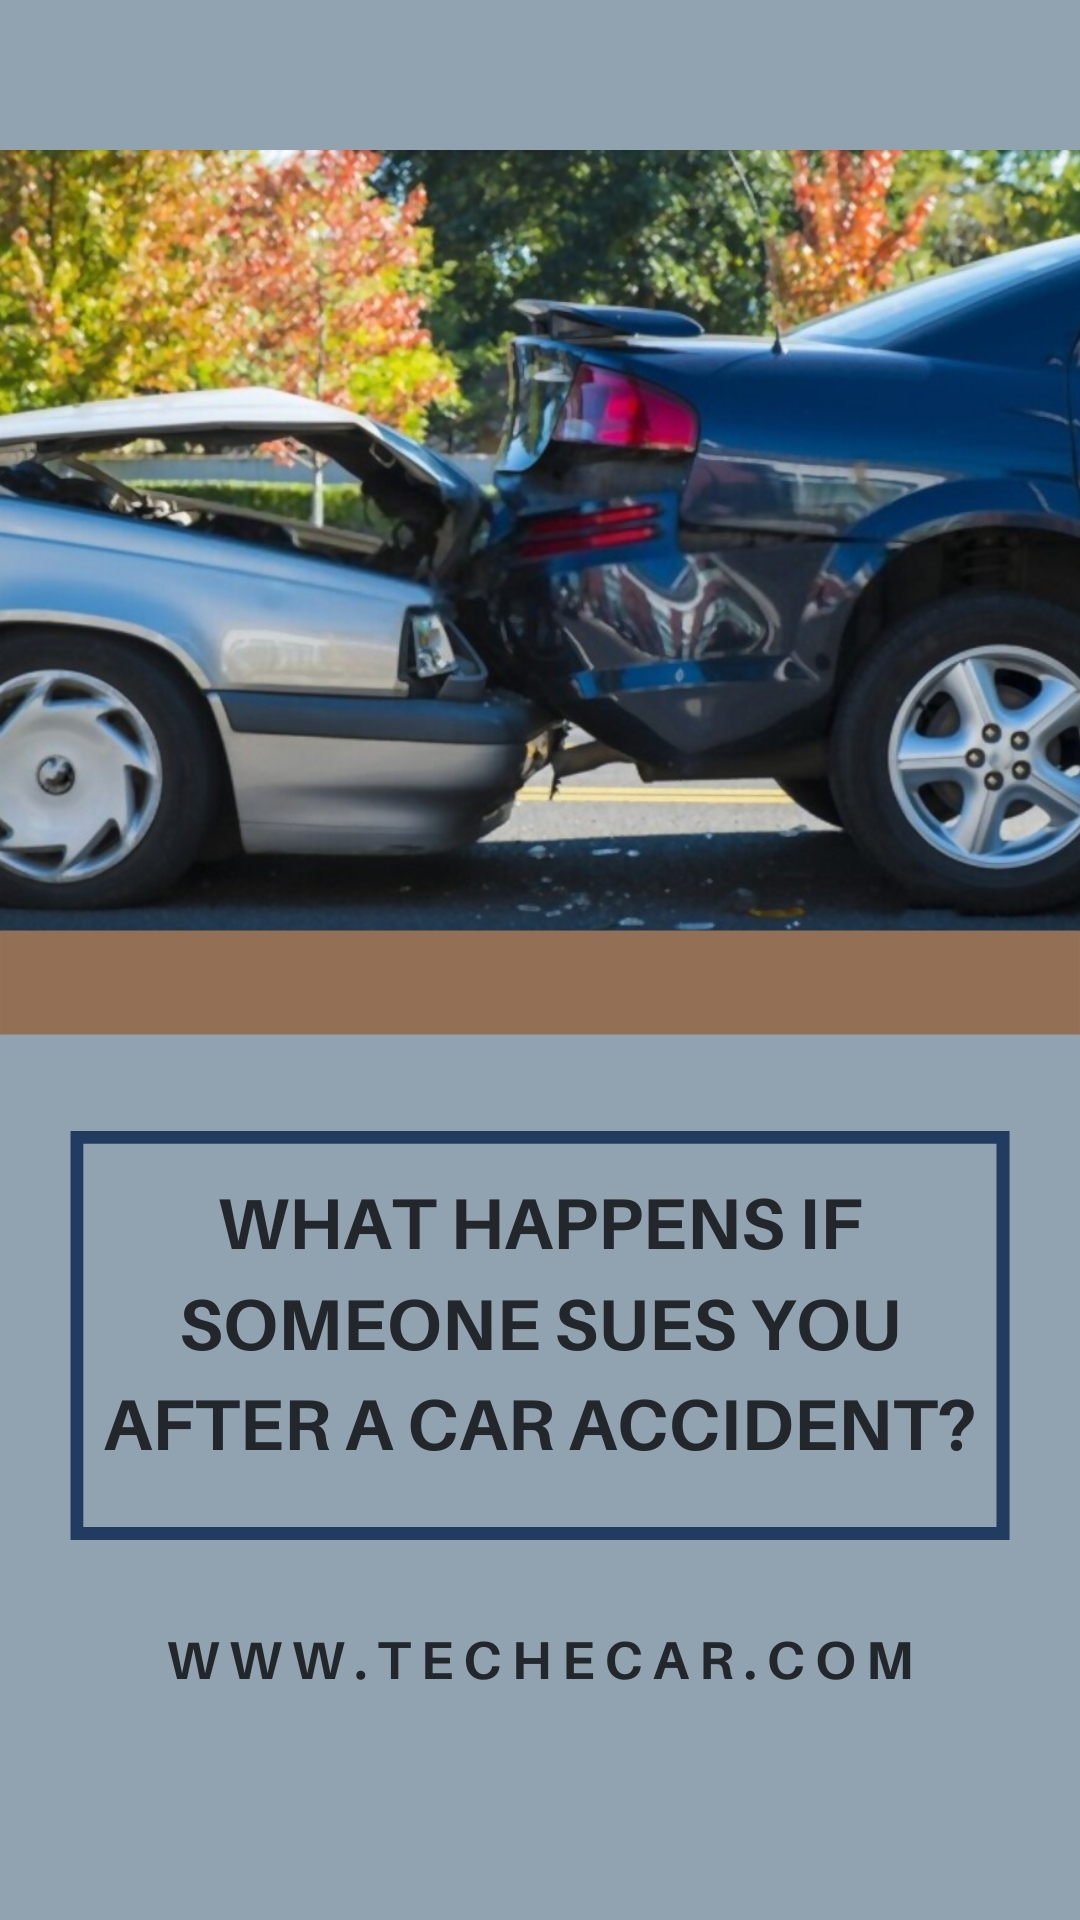 What Happens If Someone Sues You After A Car Accident